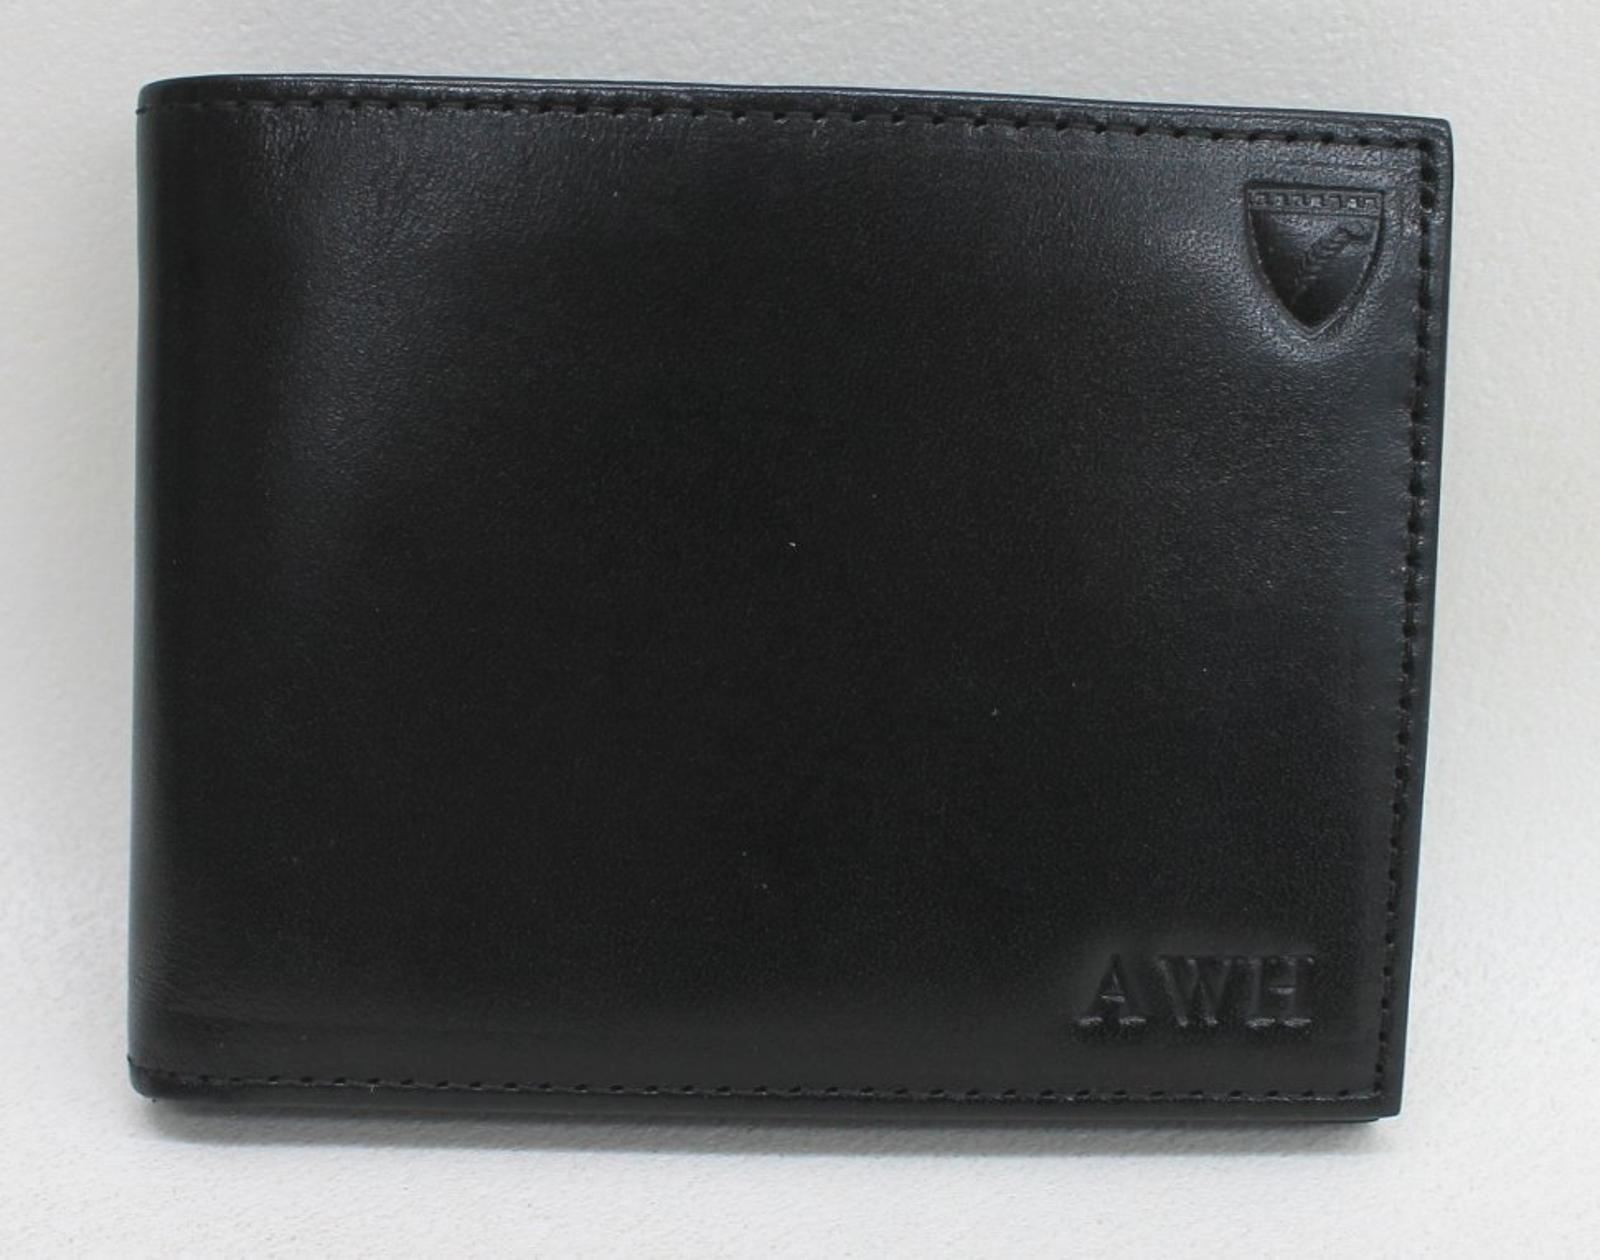 ASPINAL-OF-LONDON-Men-039-s-Black-8-Card-Billfold-Leather-Wallet-Embossed-AWH-NEW